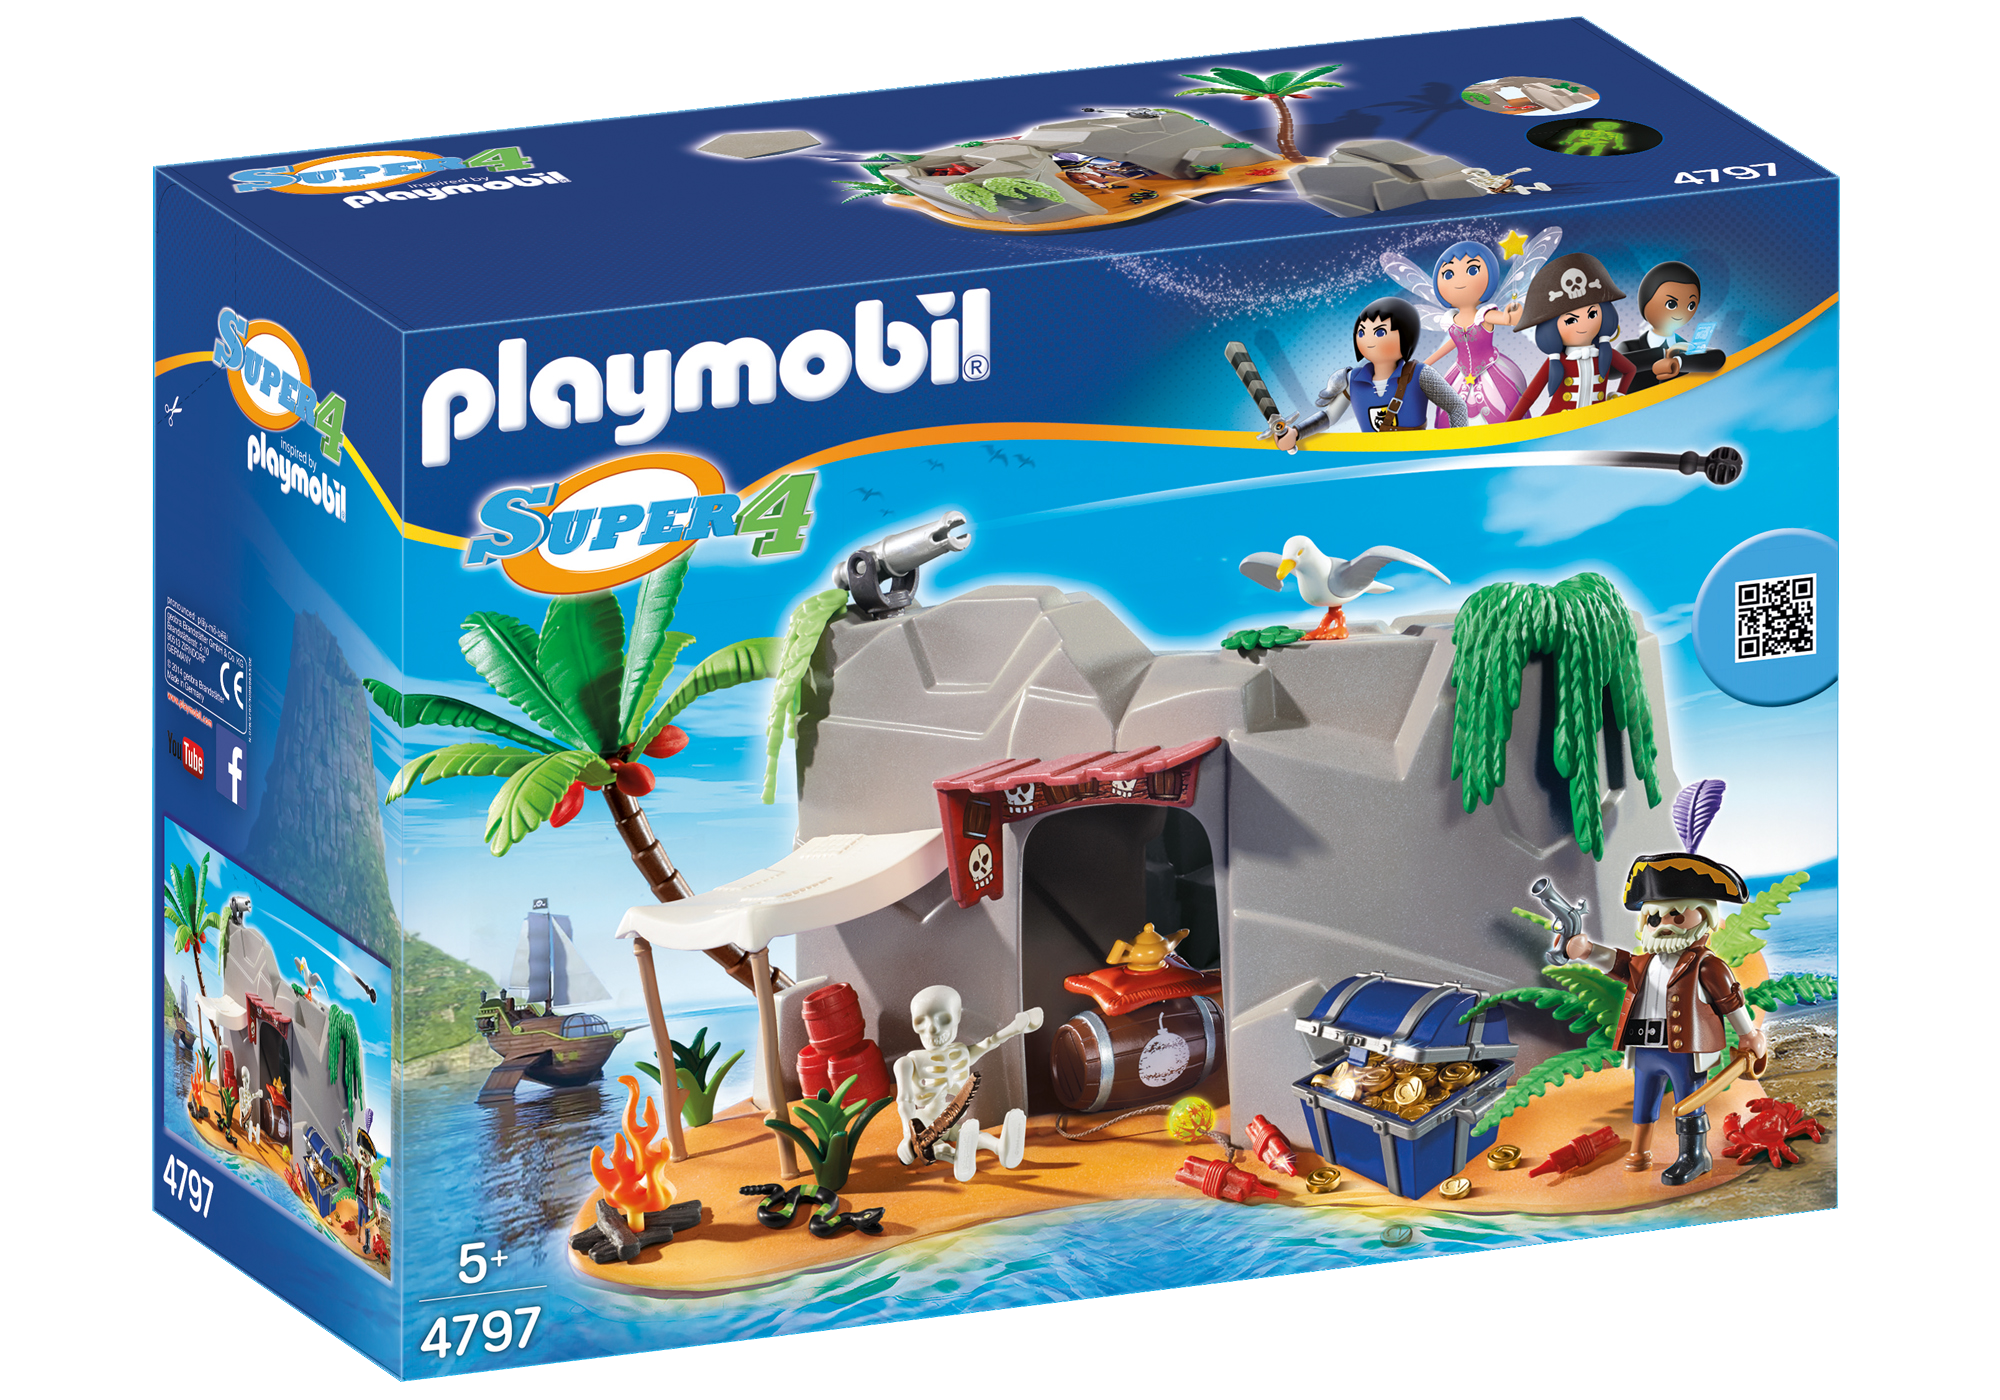 http://media.playmobil.com/i/playmobil/4797_product_box_front/Пищера Пирата